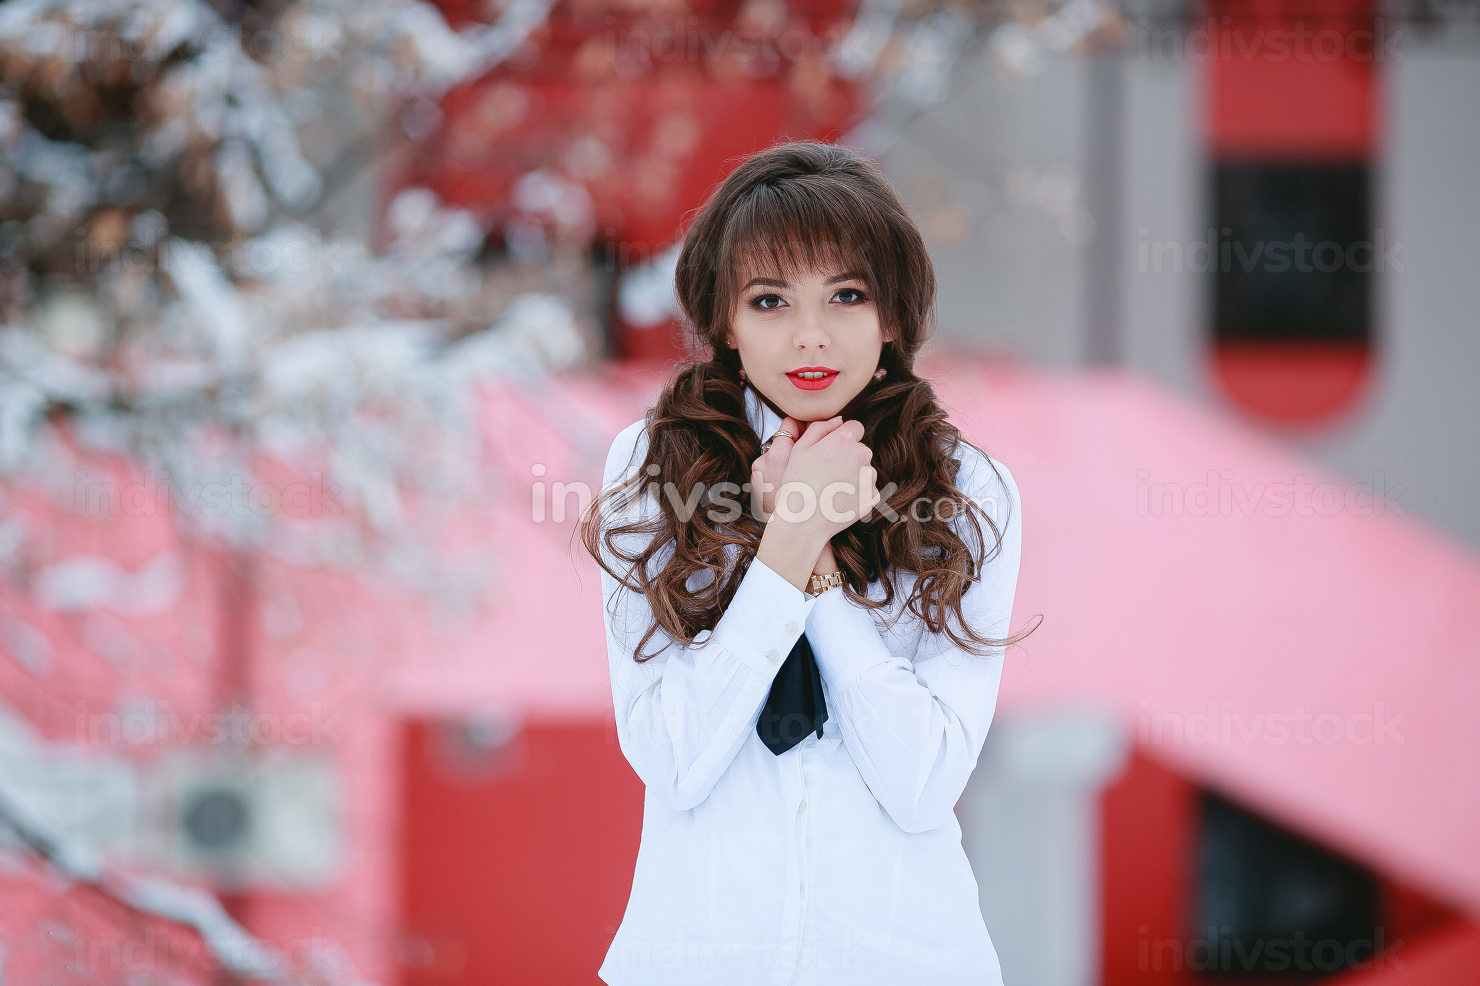 young woman outdoor and cold blurred background